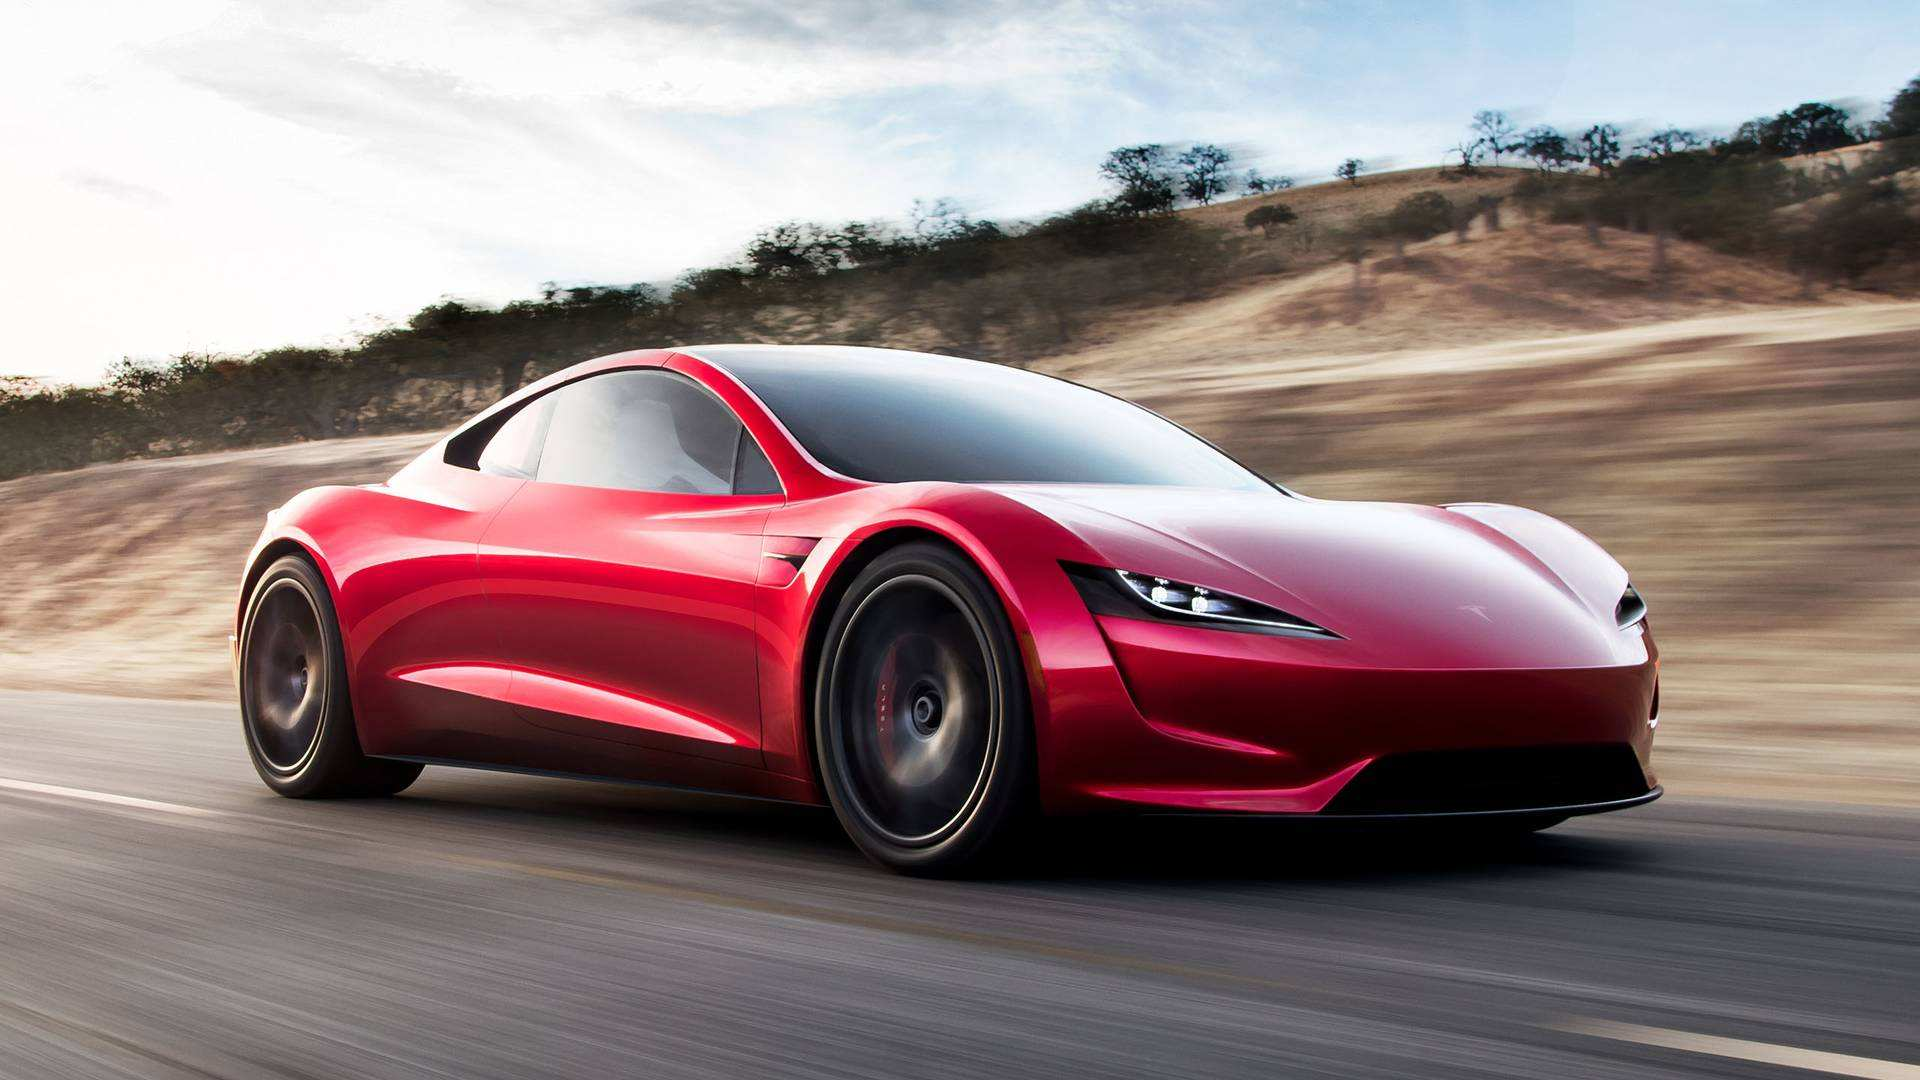 27 New 2020 Tesla Roadster 0 60 Wallpaper